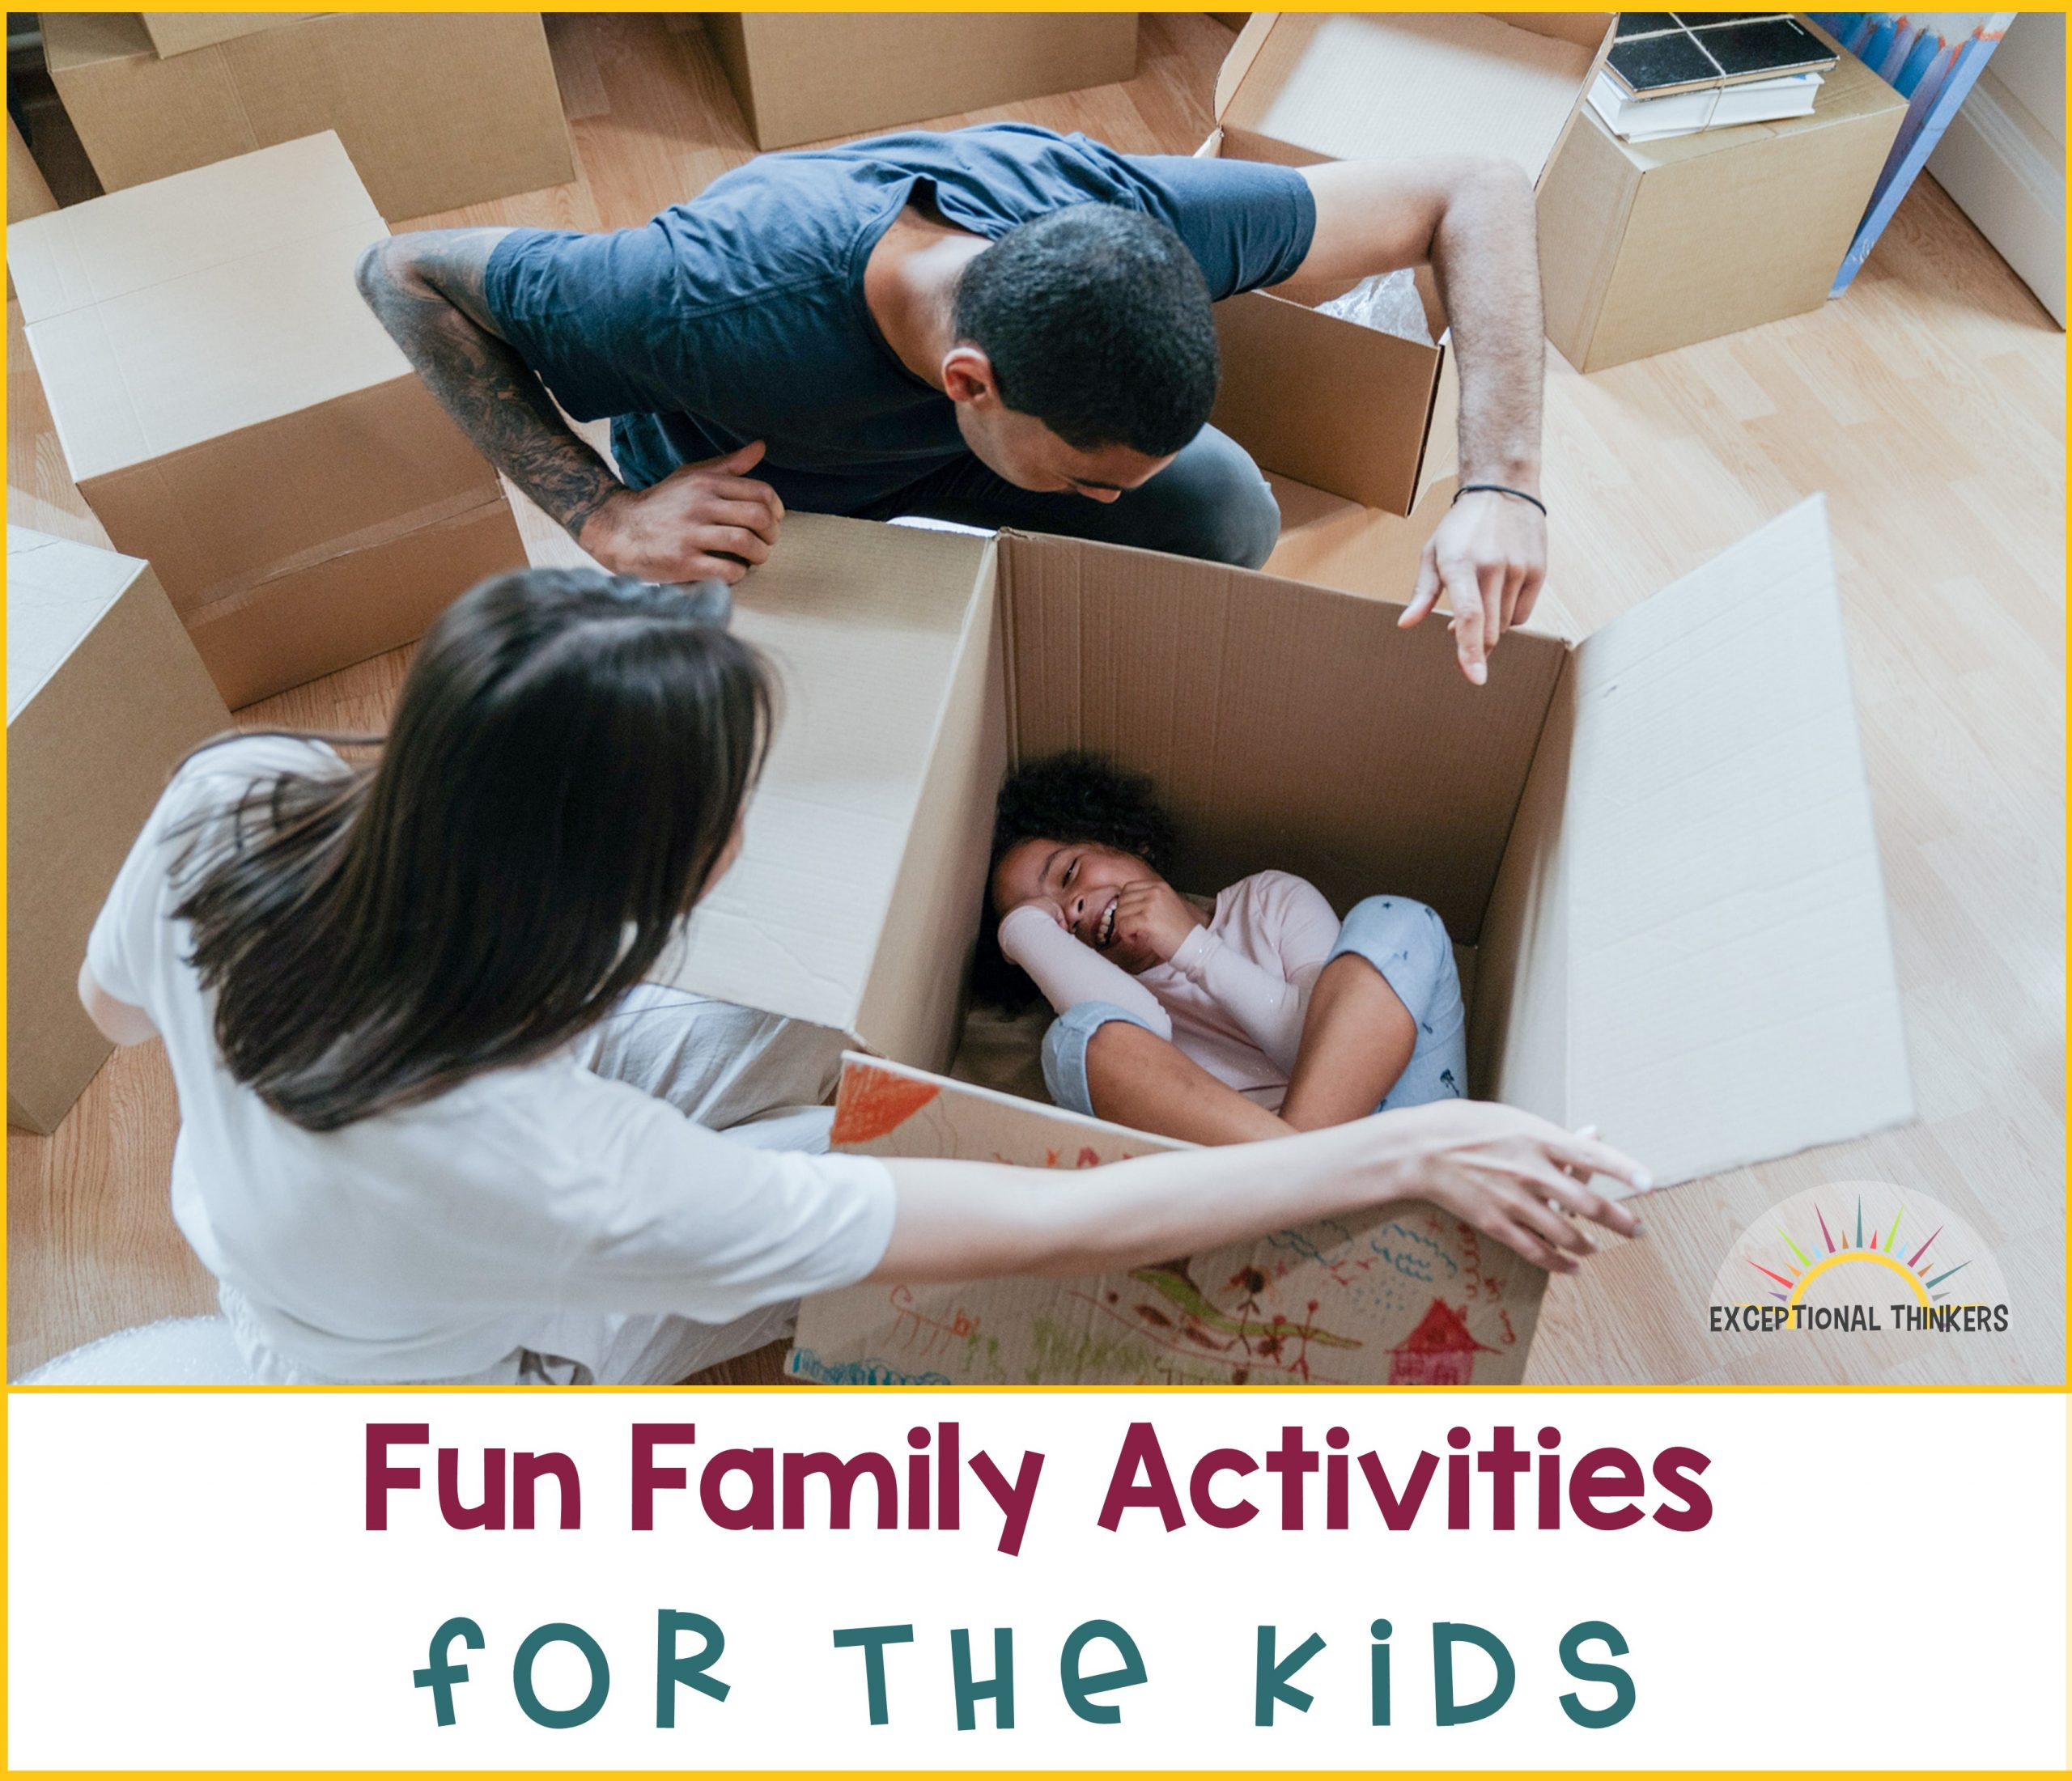 Fun Family Activities for the Kids